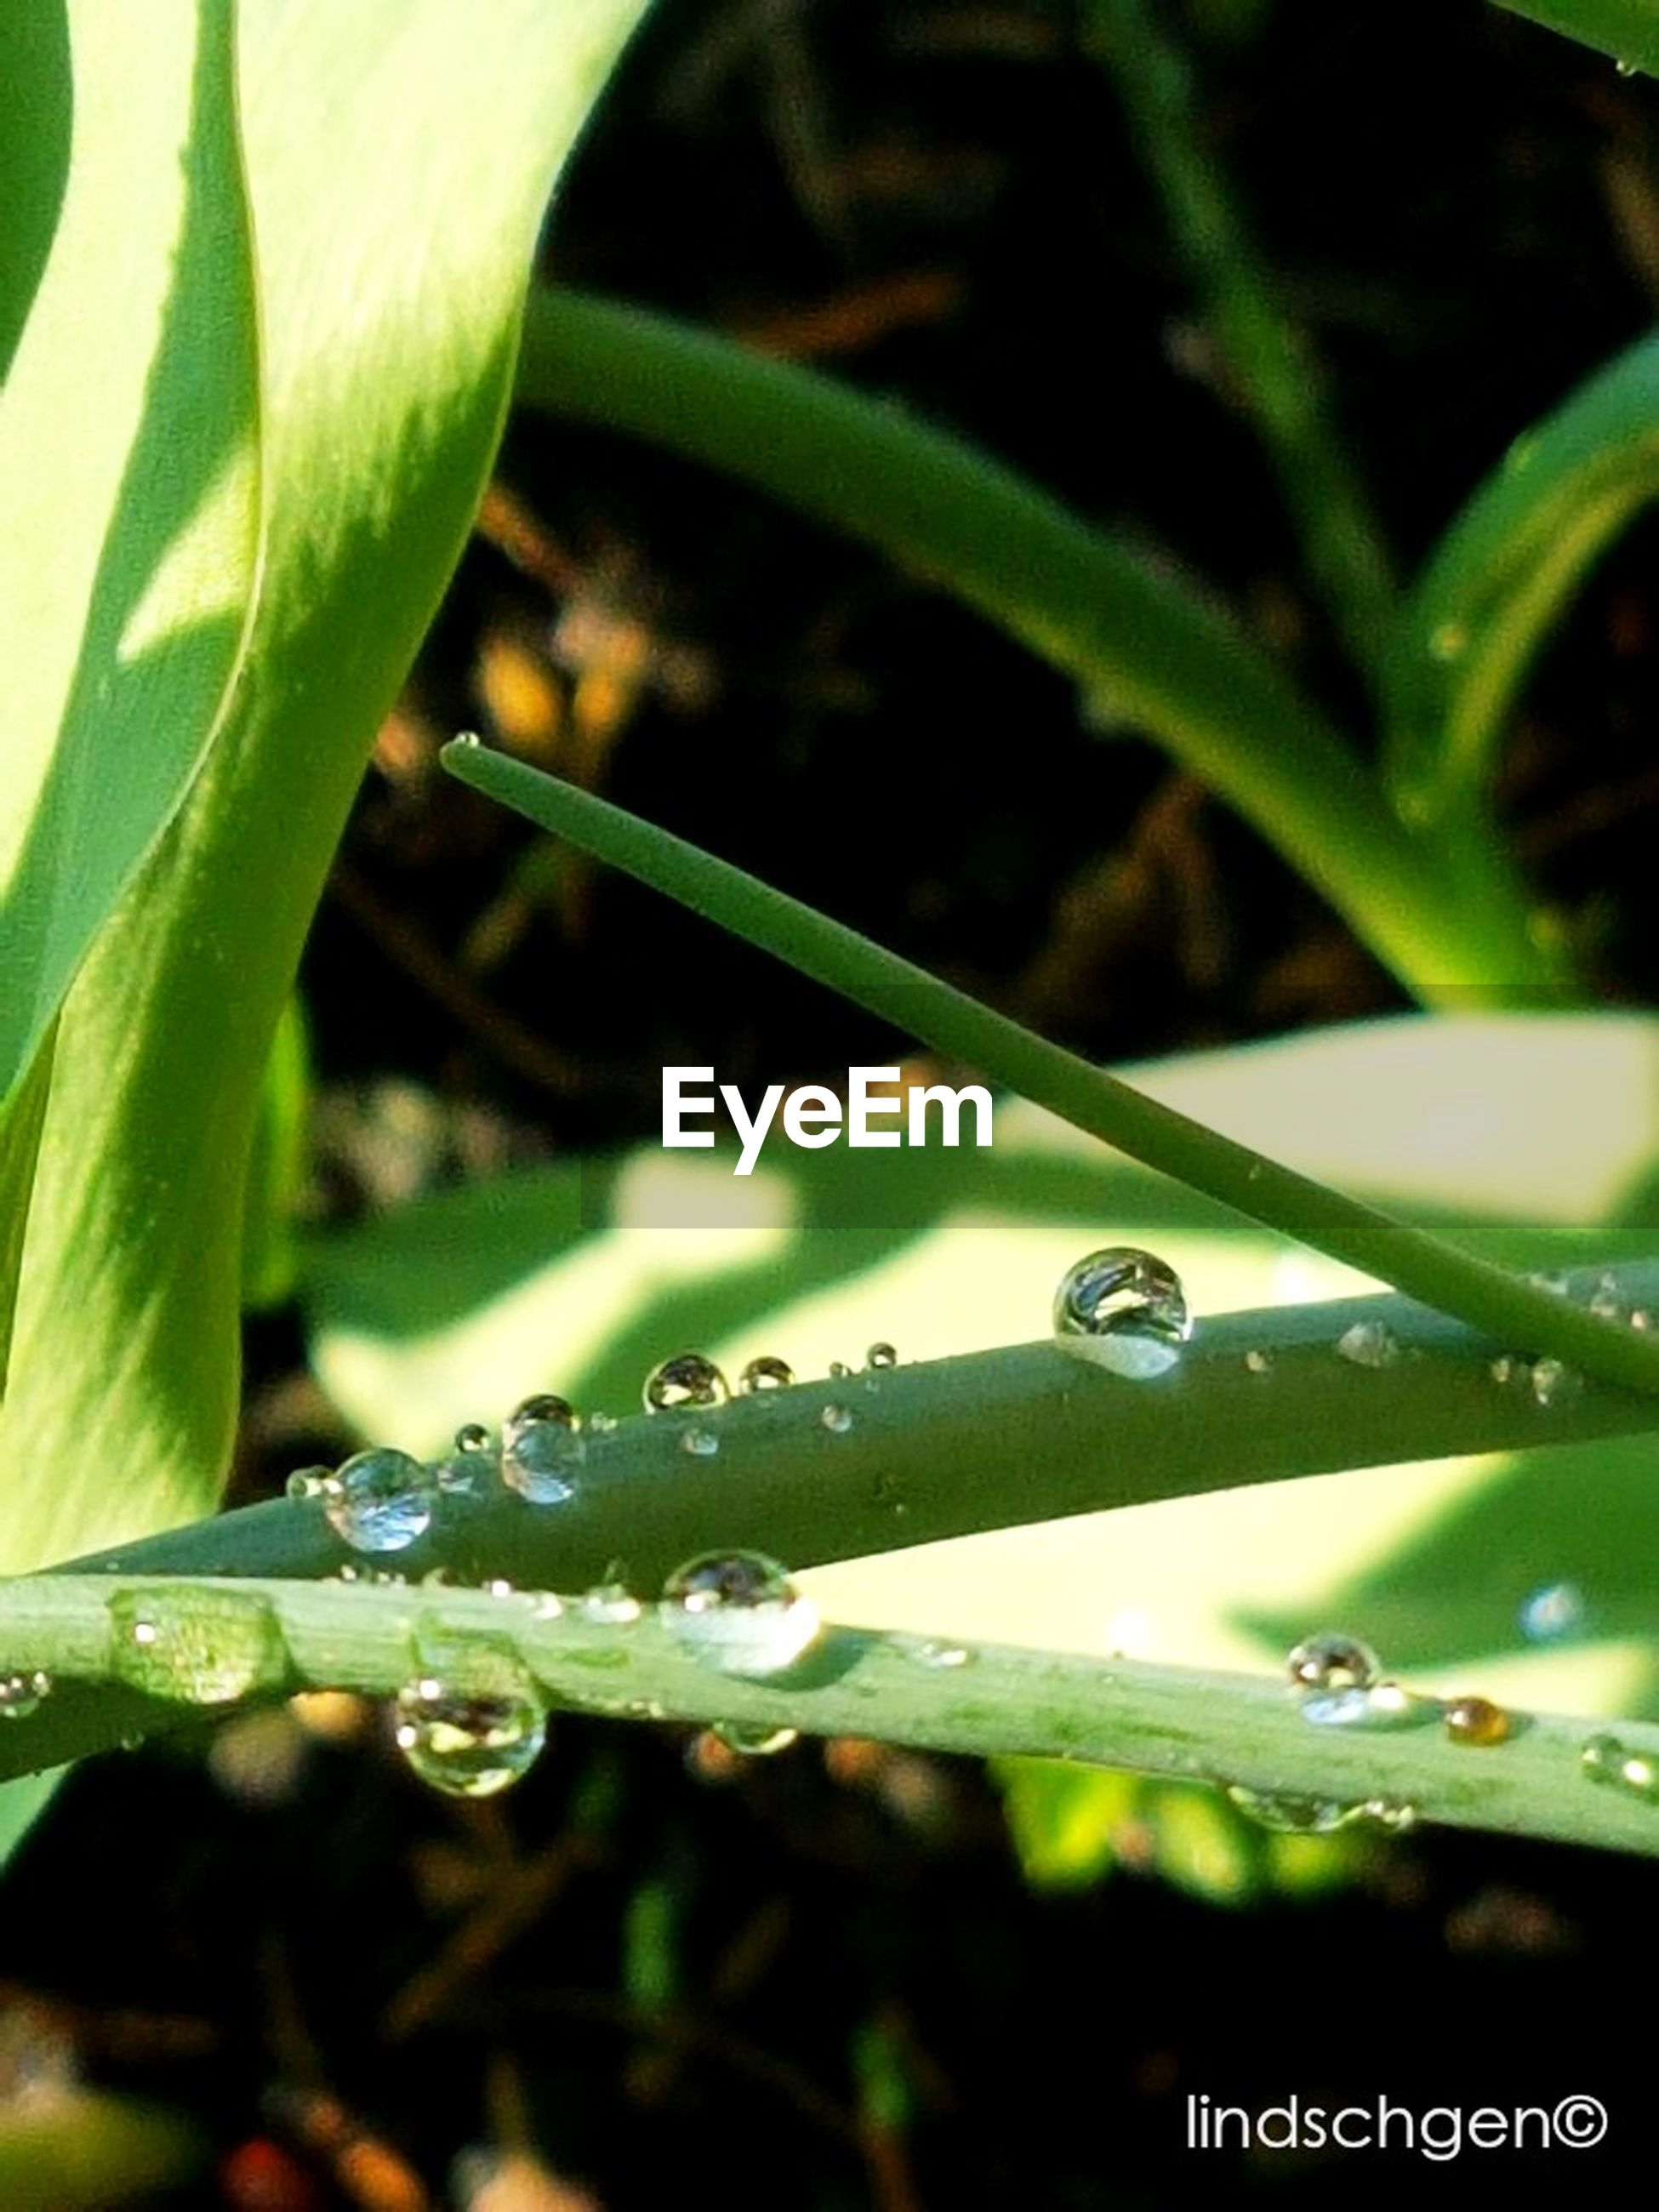 nature, drop, growth, plant, focus on foreground, leaf, green color, no people, close-up, beauty in nature, animal themes, outdoors, insect, wet, fragility, one animal, day, freshness, water, animals in the wild